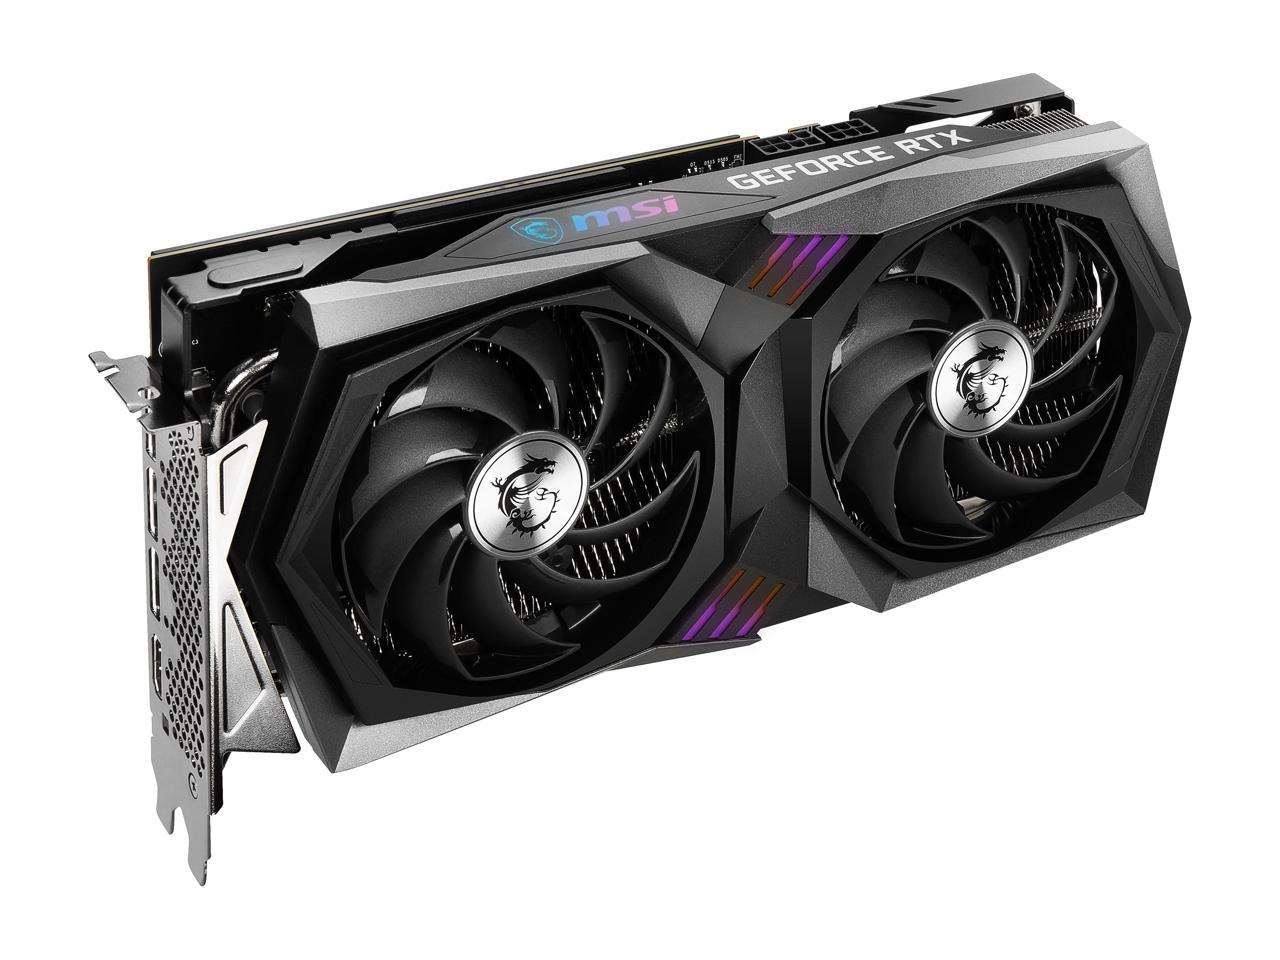 MSI GeForce RTX 3060 DirectX 12 Ultimate RTX 3060 Gaming X  + Zotac ZBOX CI329 NANO BUNDLE IN STOCK